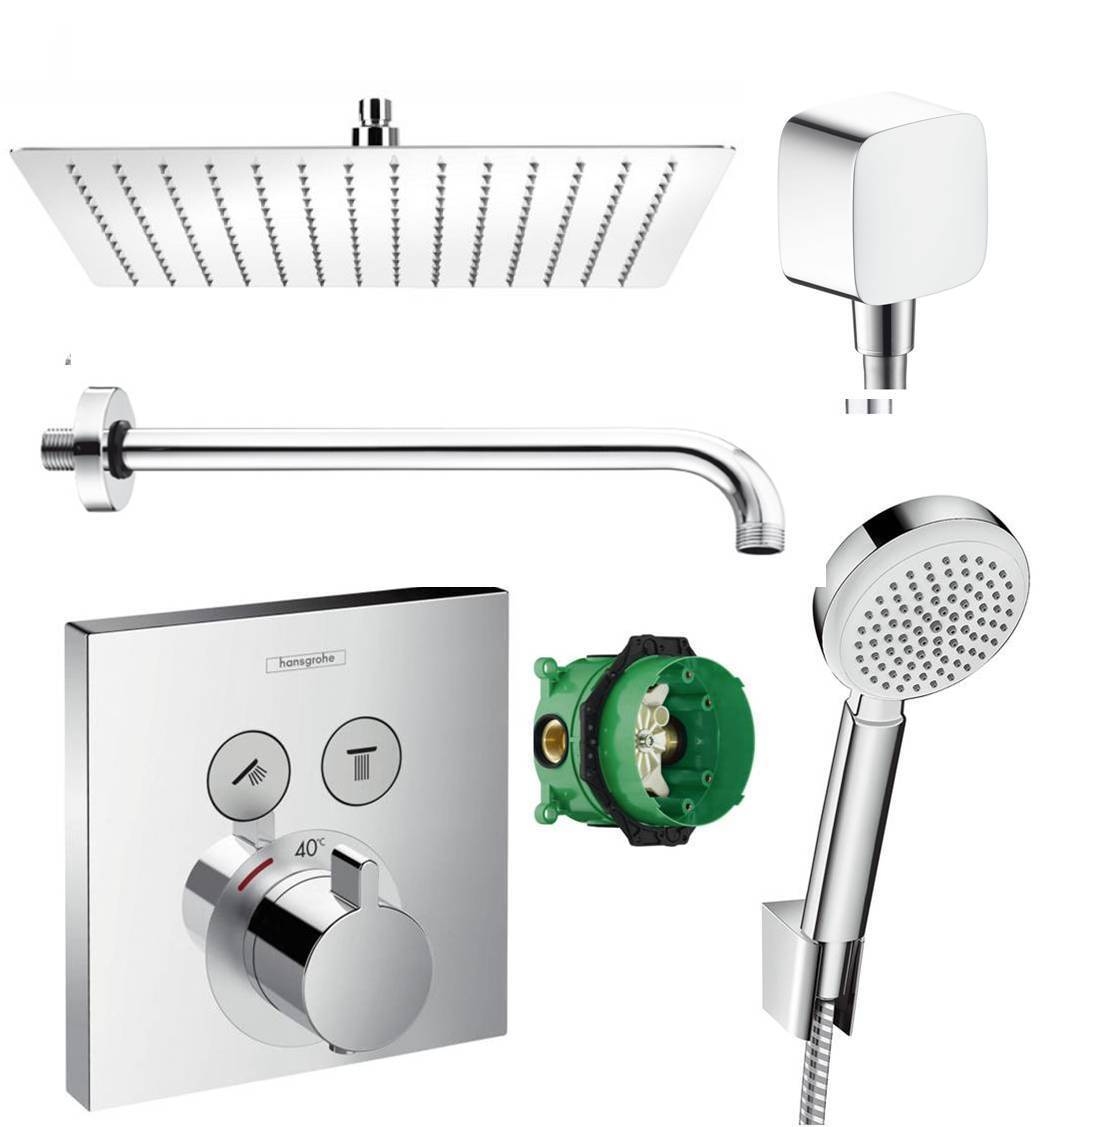 hansgrohe shower select thermostat unterputz duscharmaturenset duschteller 30 cm. Black Bedroom Furniture Sets. Home Design Ideas